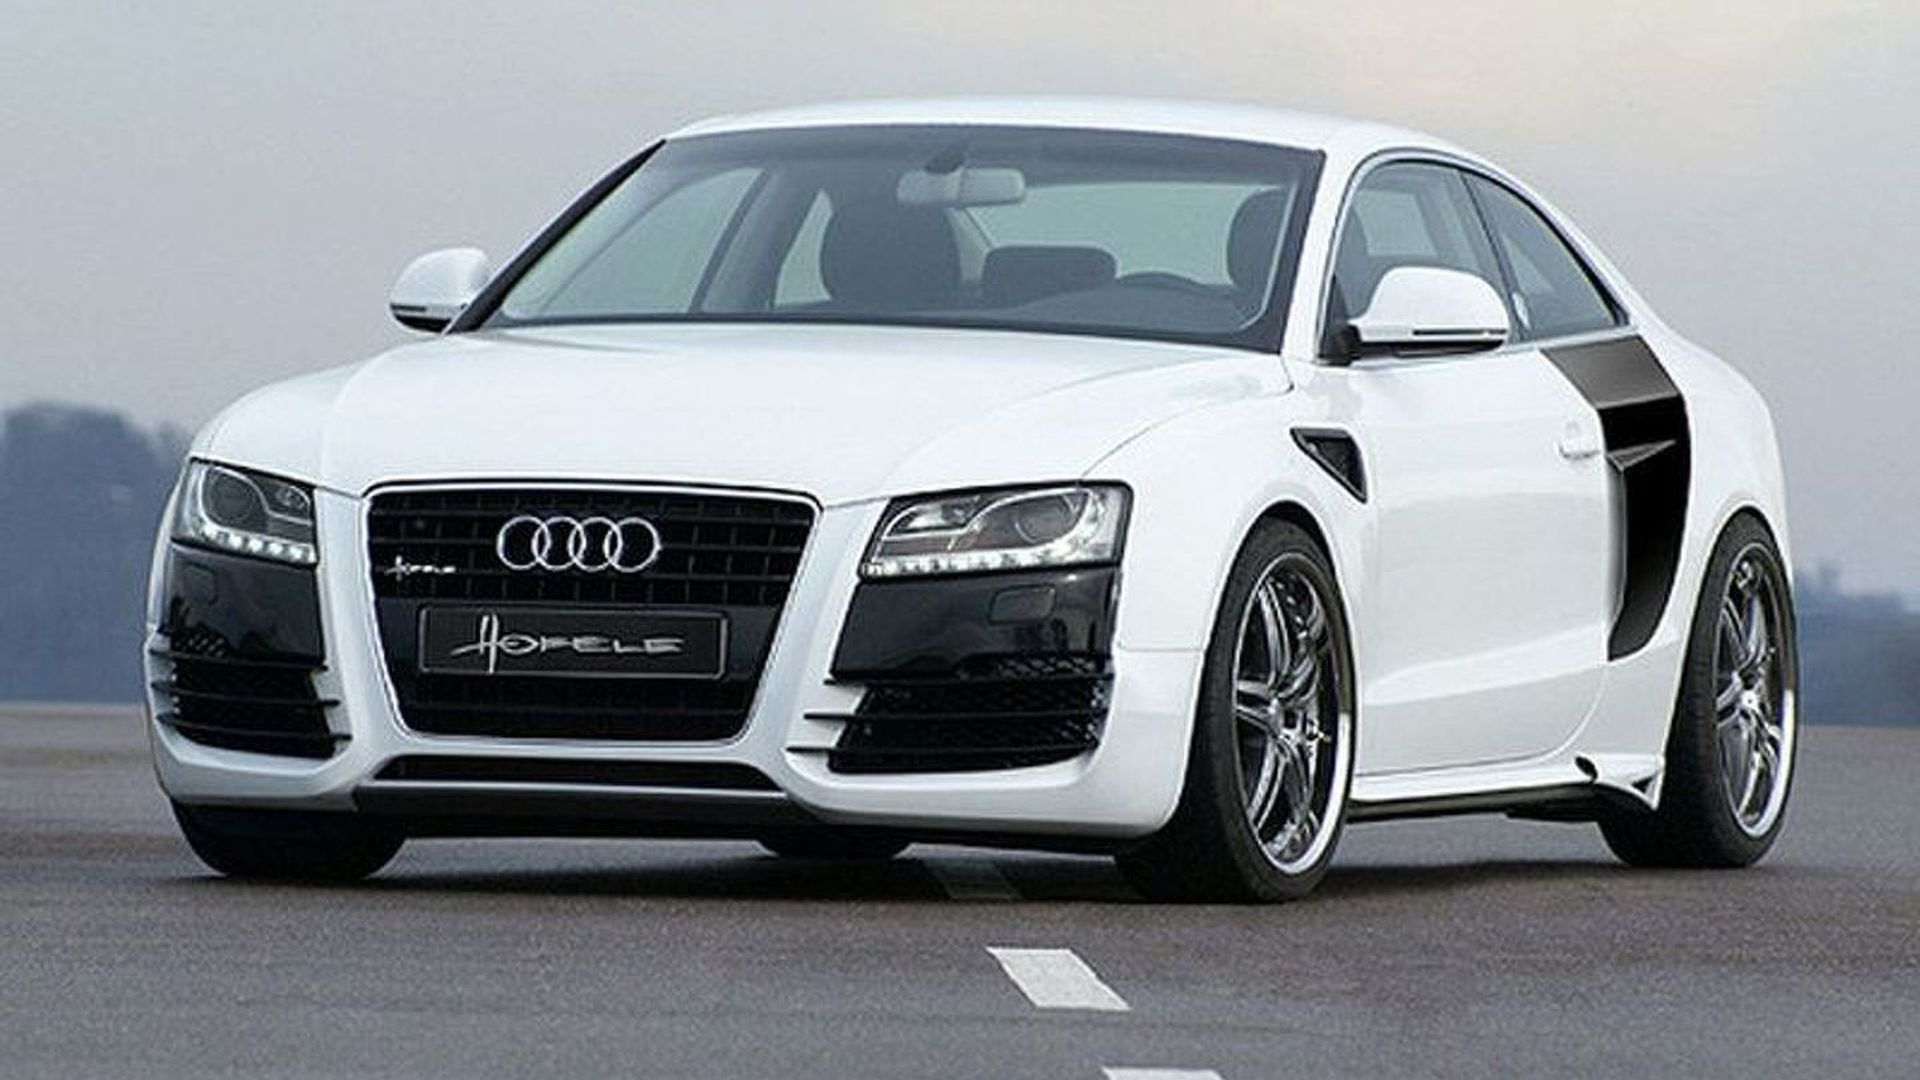 Hofele R8 Look Body Kit For Audi A5 Coupe Cabriolet And Sportback